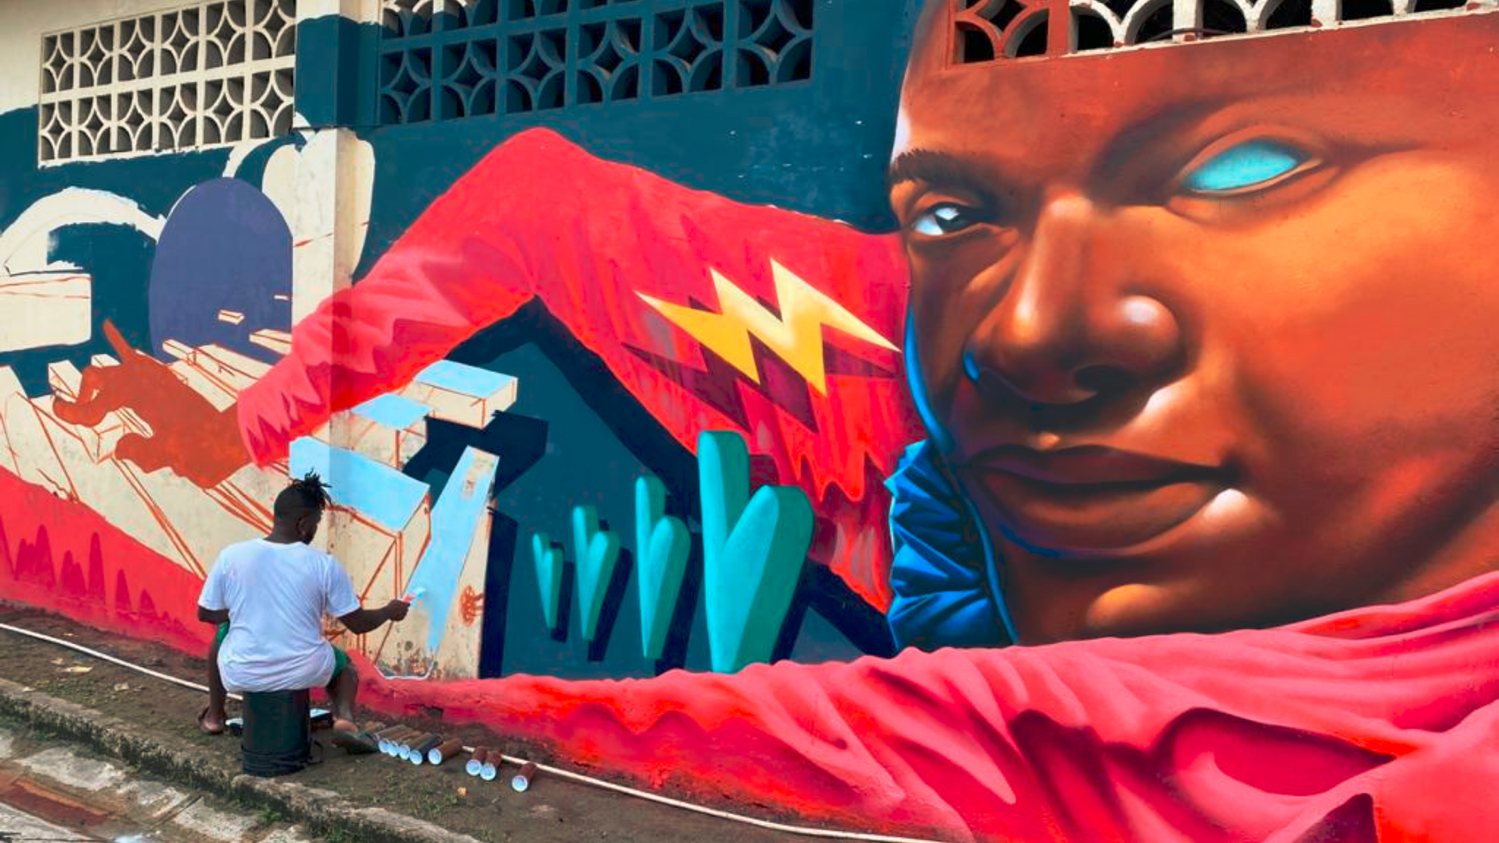 The artist Sergio Smith, also known as Madmagos, is painting a street mural dedicated to Luis Russell